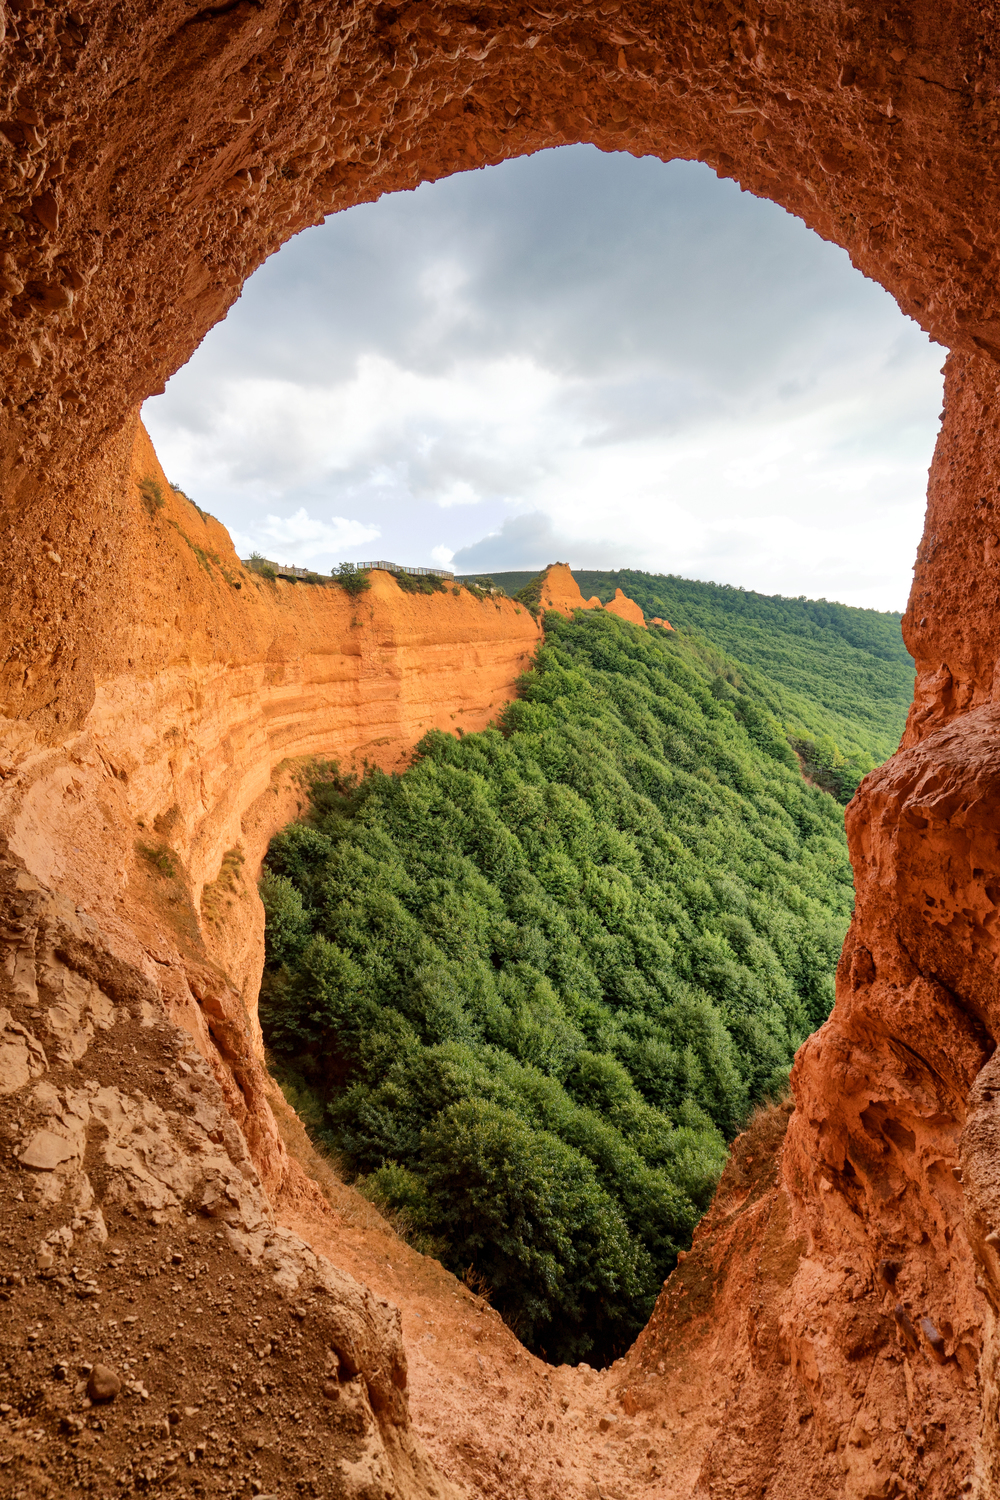 Mine Cave in Las Médulas | Photo Credit: Benoît Lefèvre - Vino2Travel